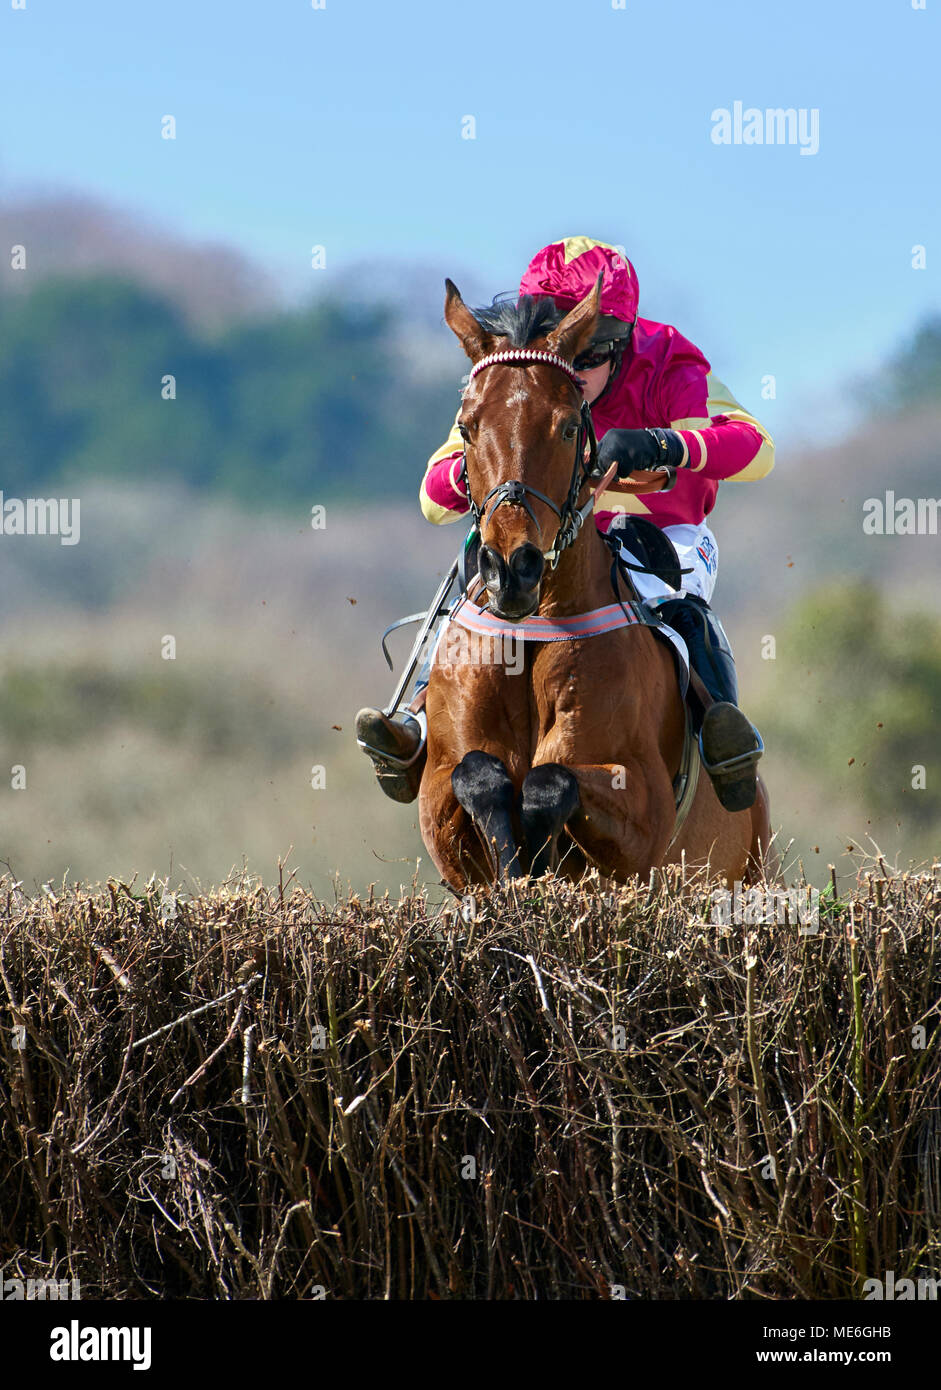 Horse and rider jumping a fence during a point-to-point event - Stock Image